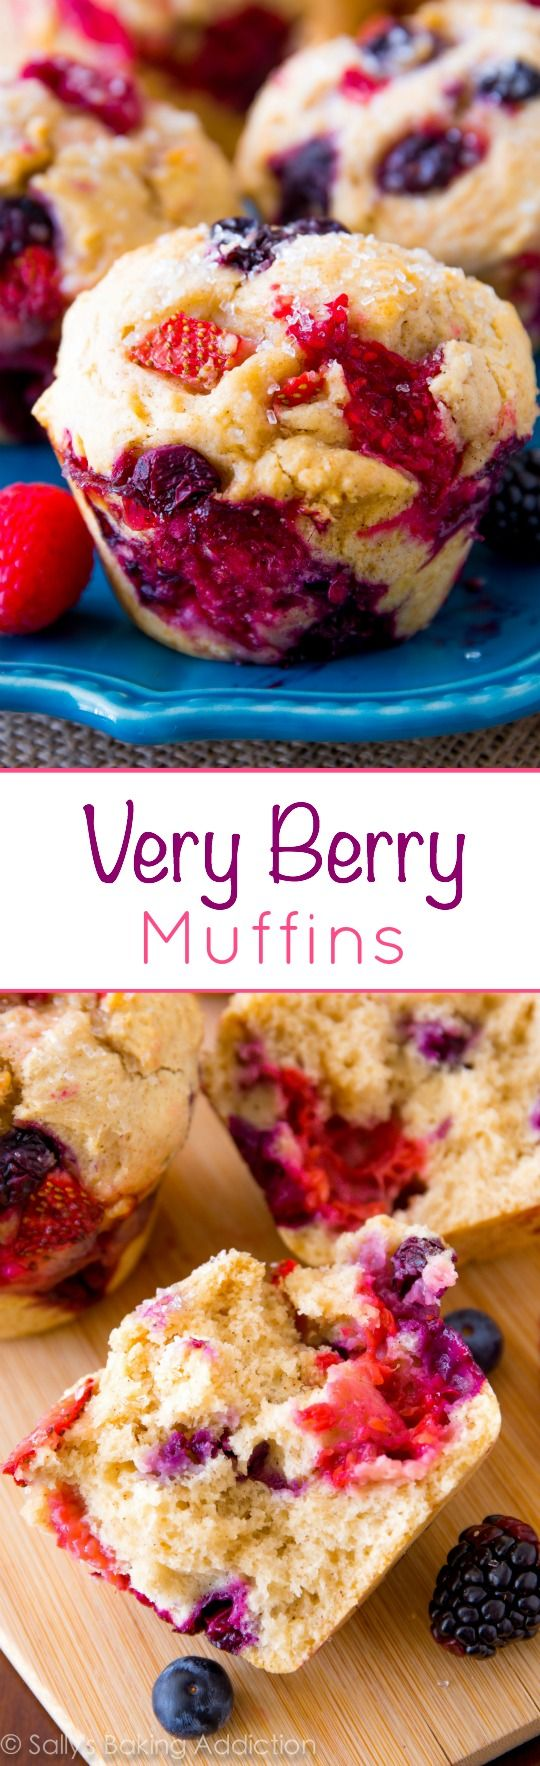 Very Berry Muffins-- use this basic muffin recipe to make dozens of other muffin flavors too!